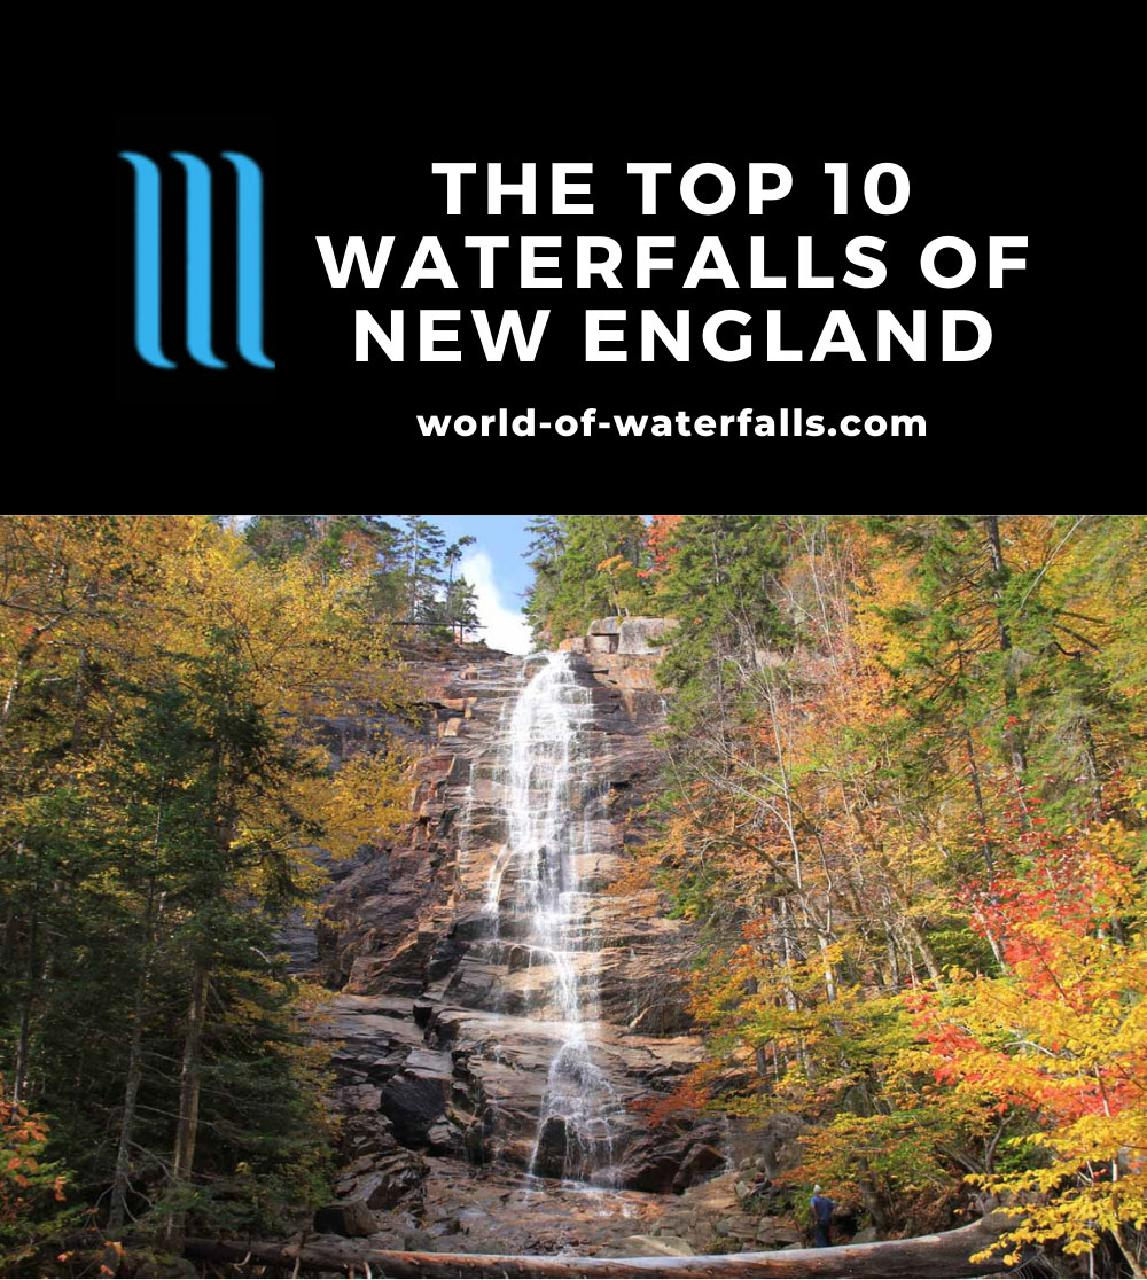 The Top 10 Waterfalls of New England